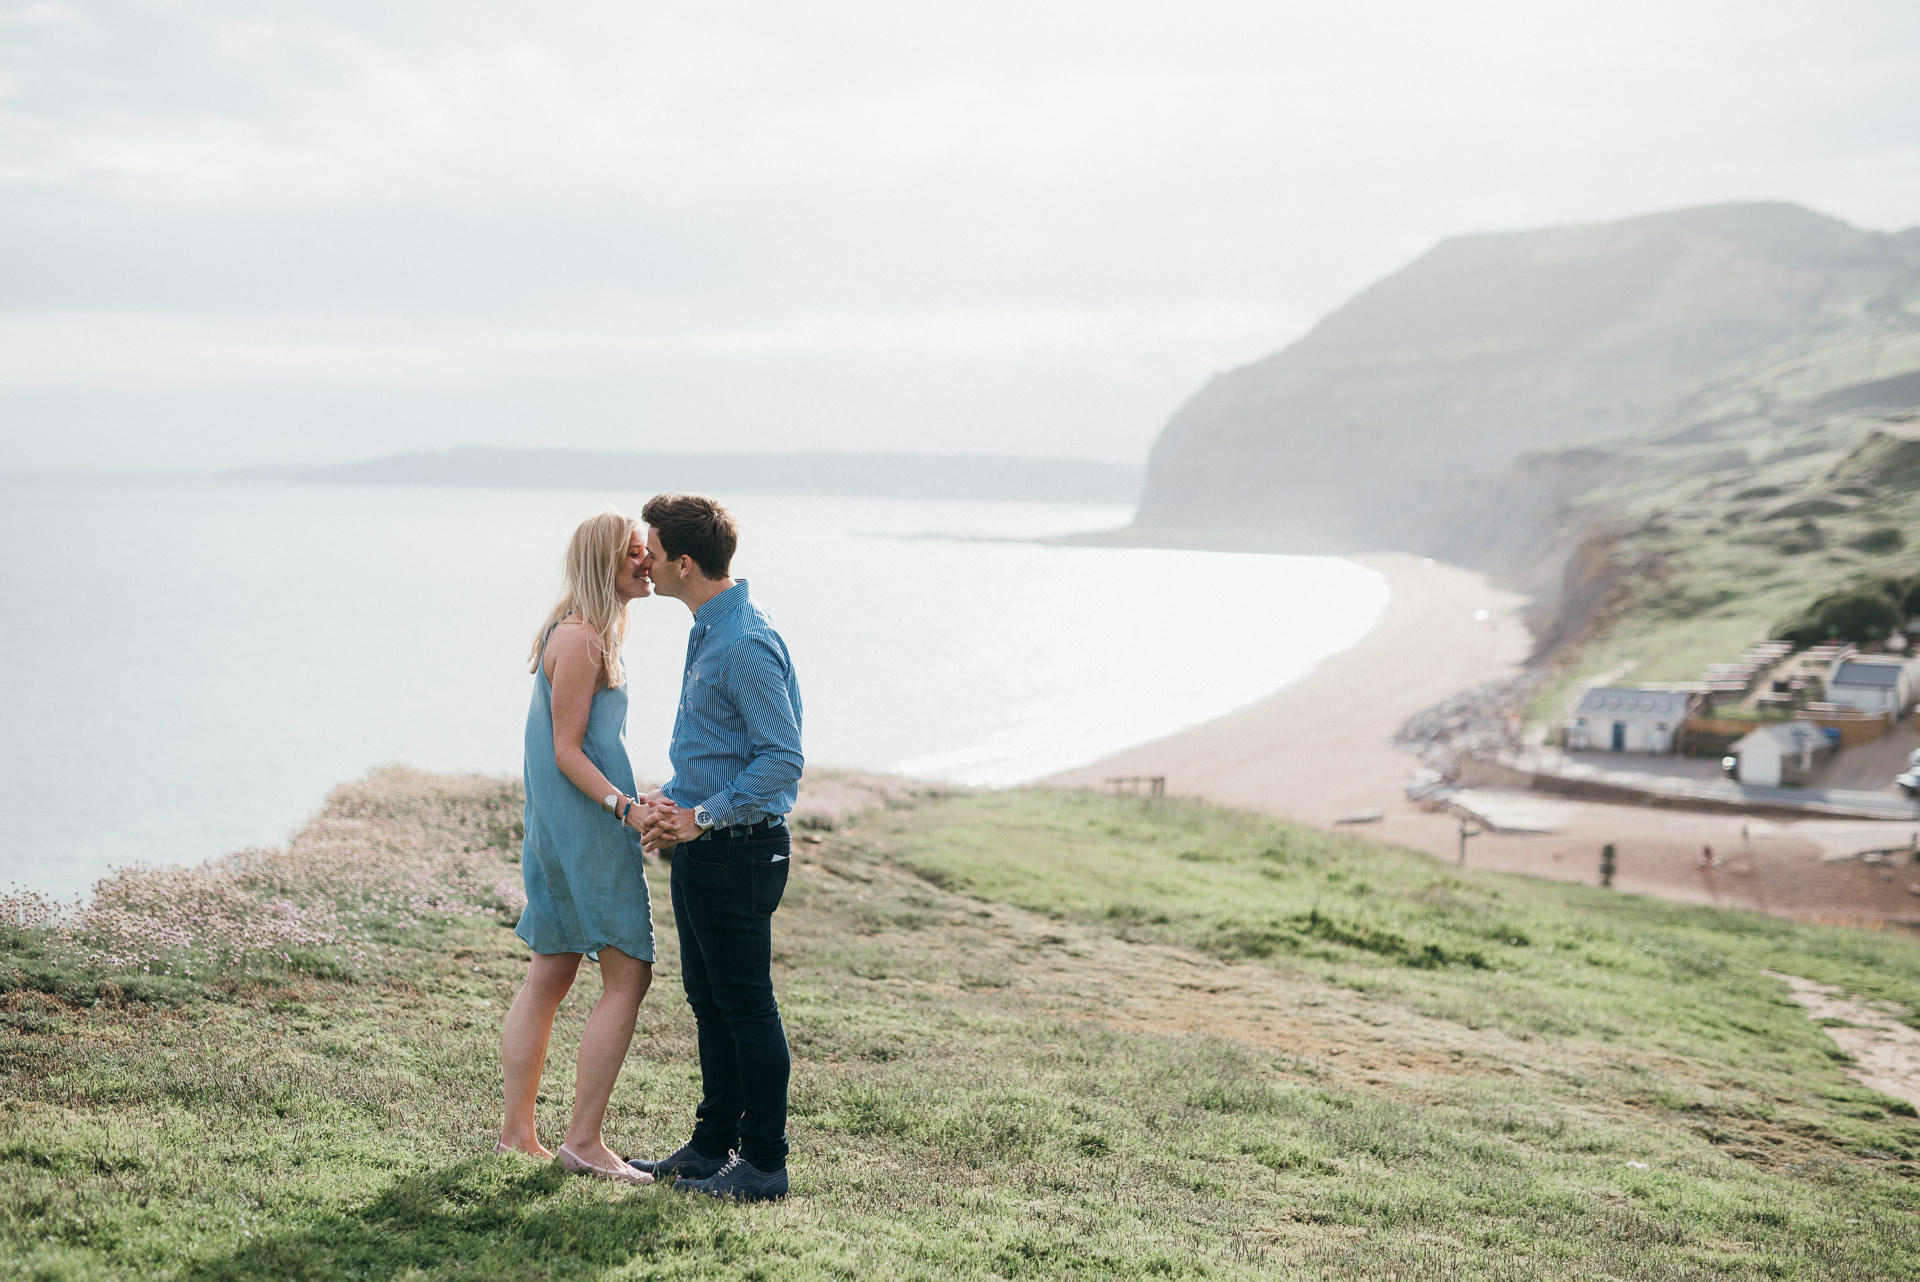 Jurassic coast portrait shoot 2